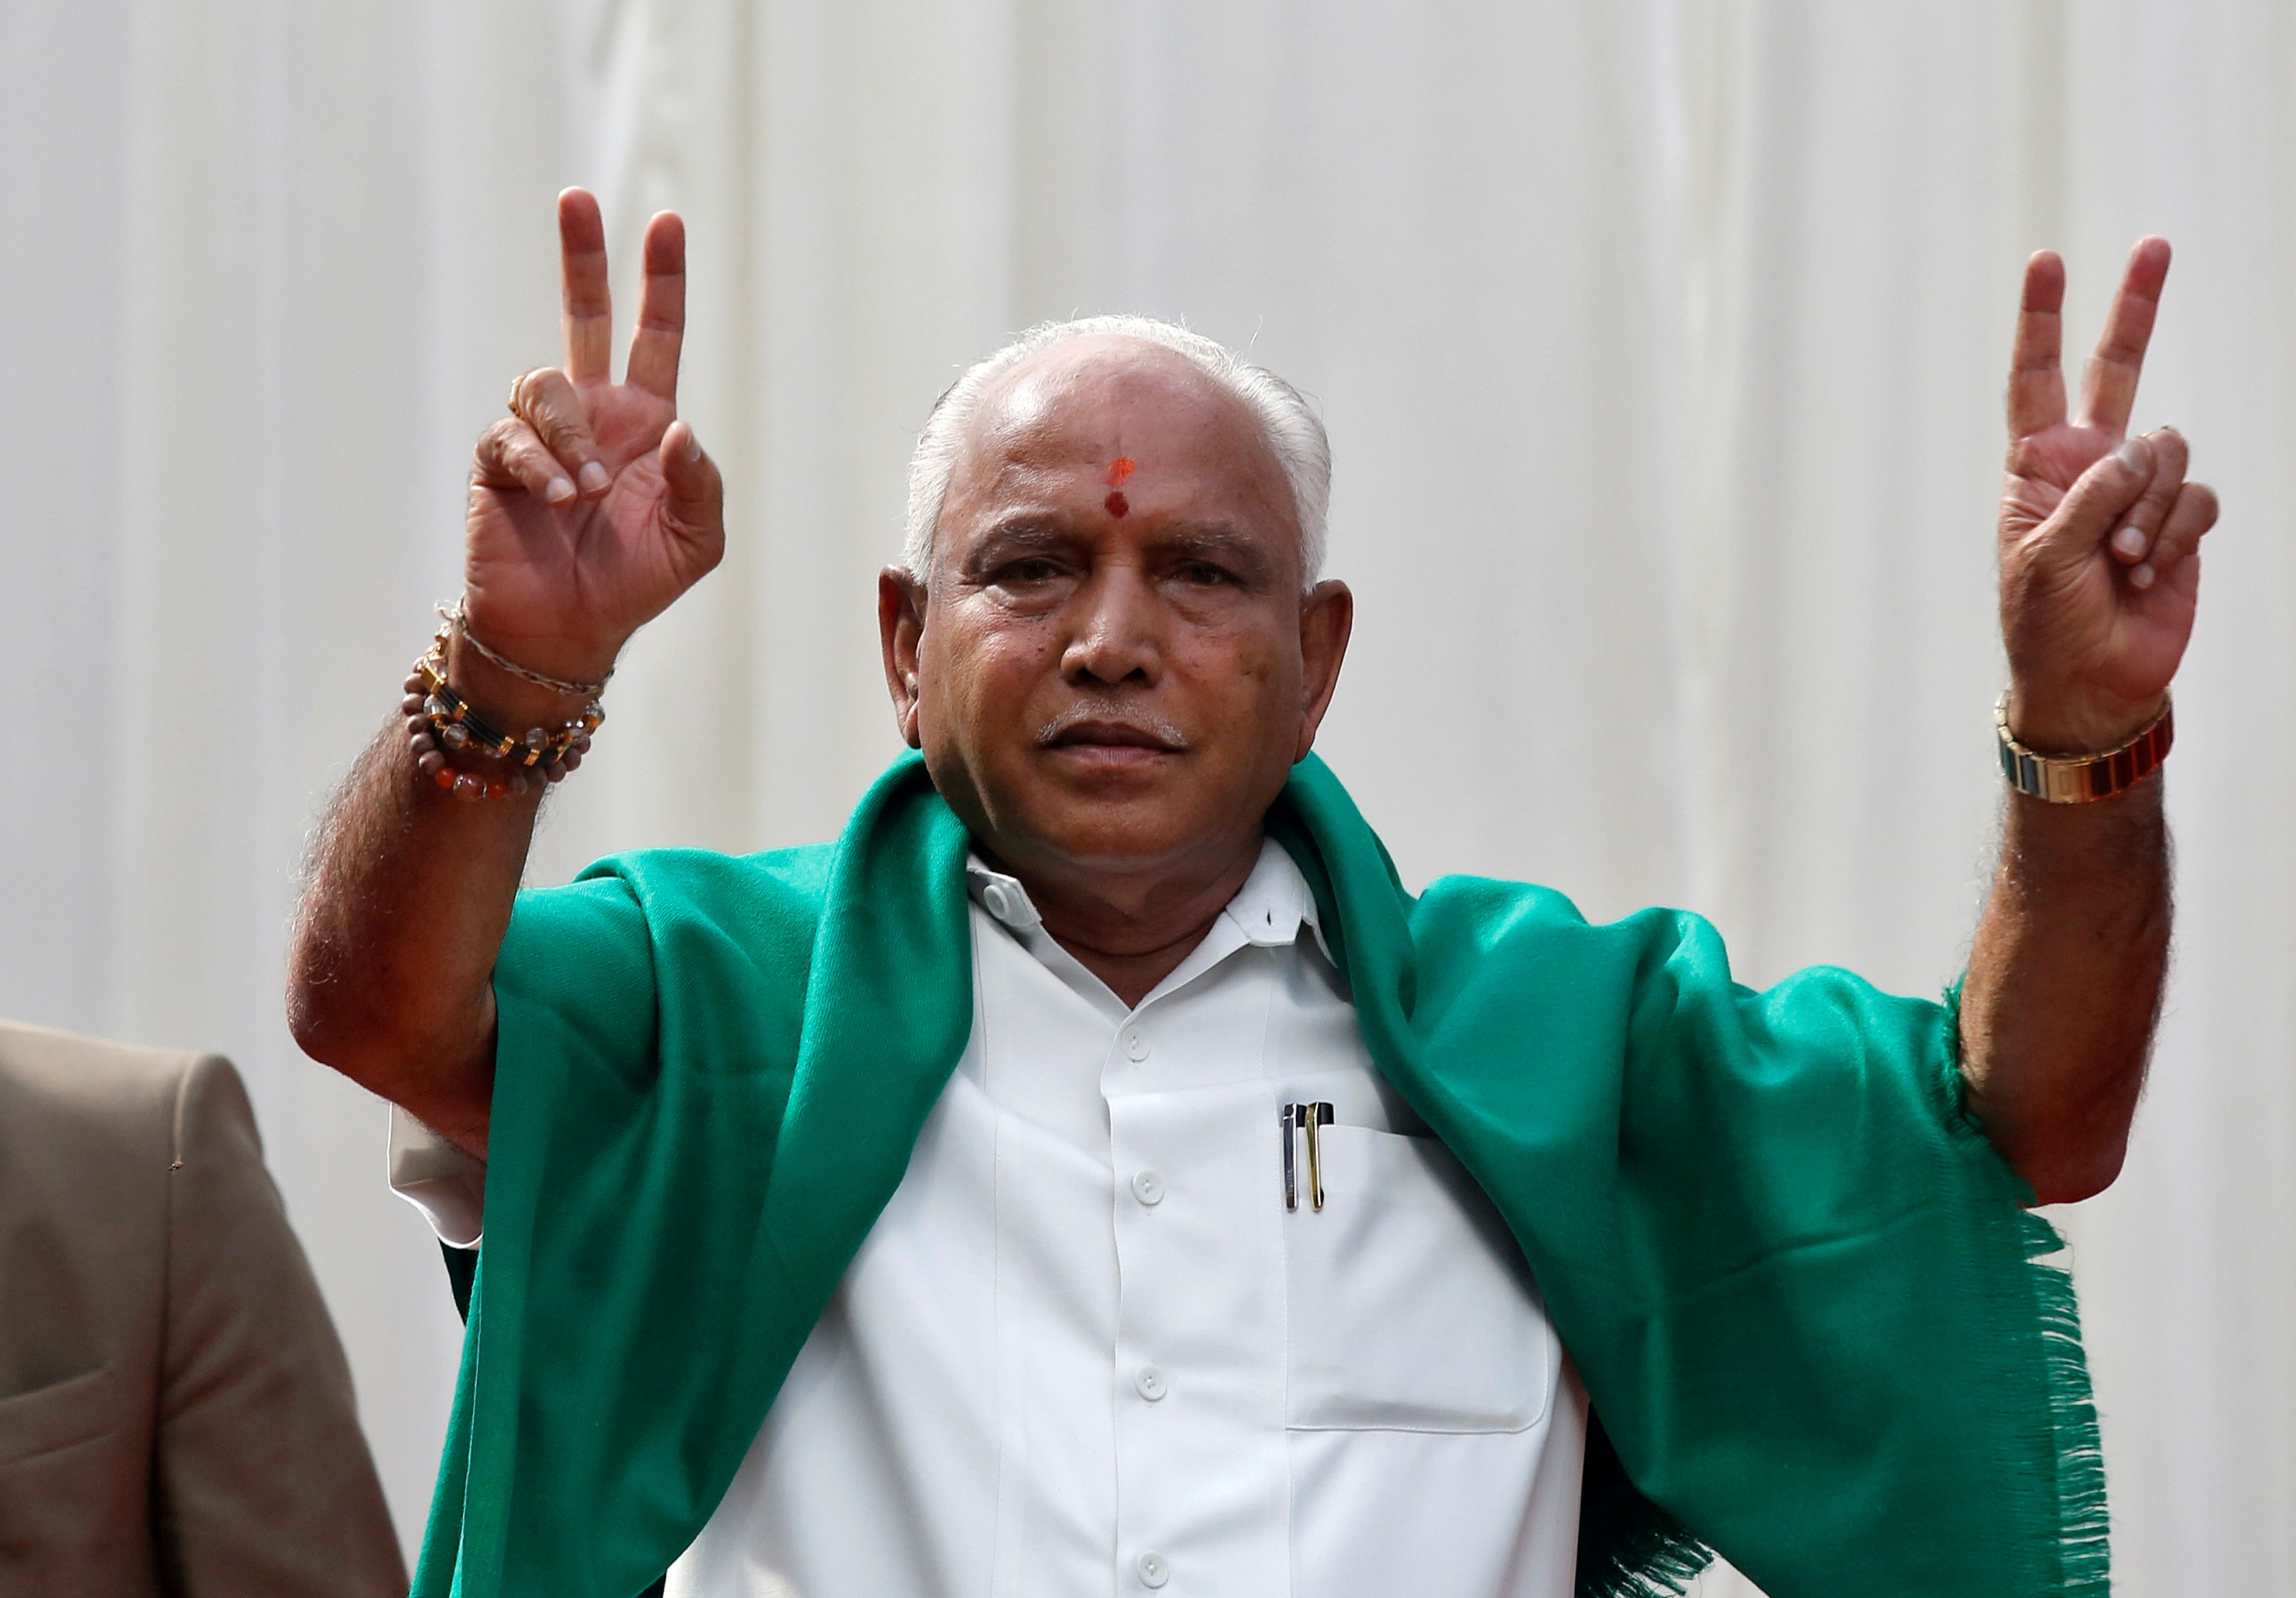 India's ruling Bharatiya Janata Party (BJP) leader B. S. Yeddyurappa flashes the victory sign after taking oath as Chief Minister of the southern state of Karnataka inside the governor's house in Bengaluru, India, May 17, 2018. REUTERS/Abhishek N. Chinnappa/File Photo